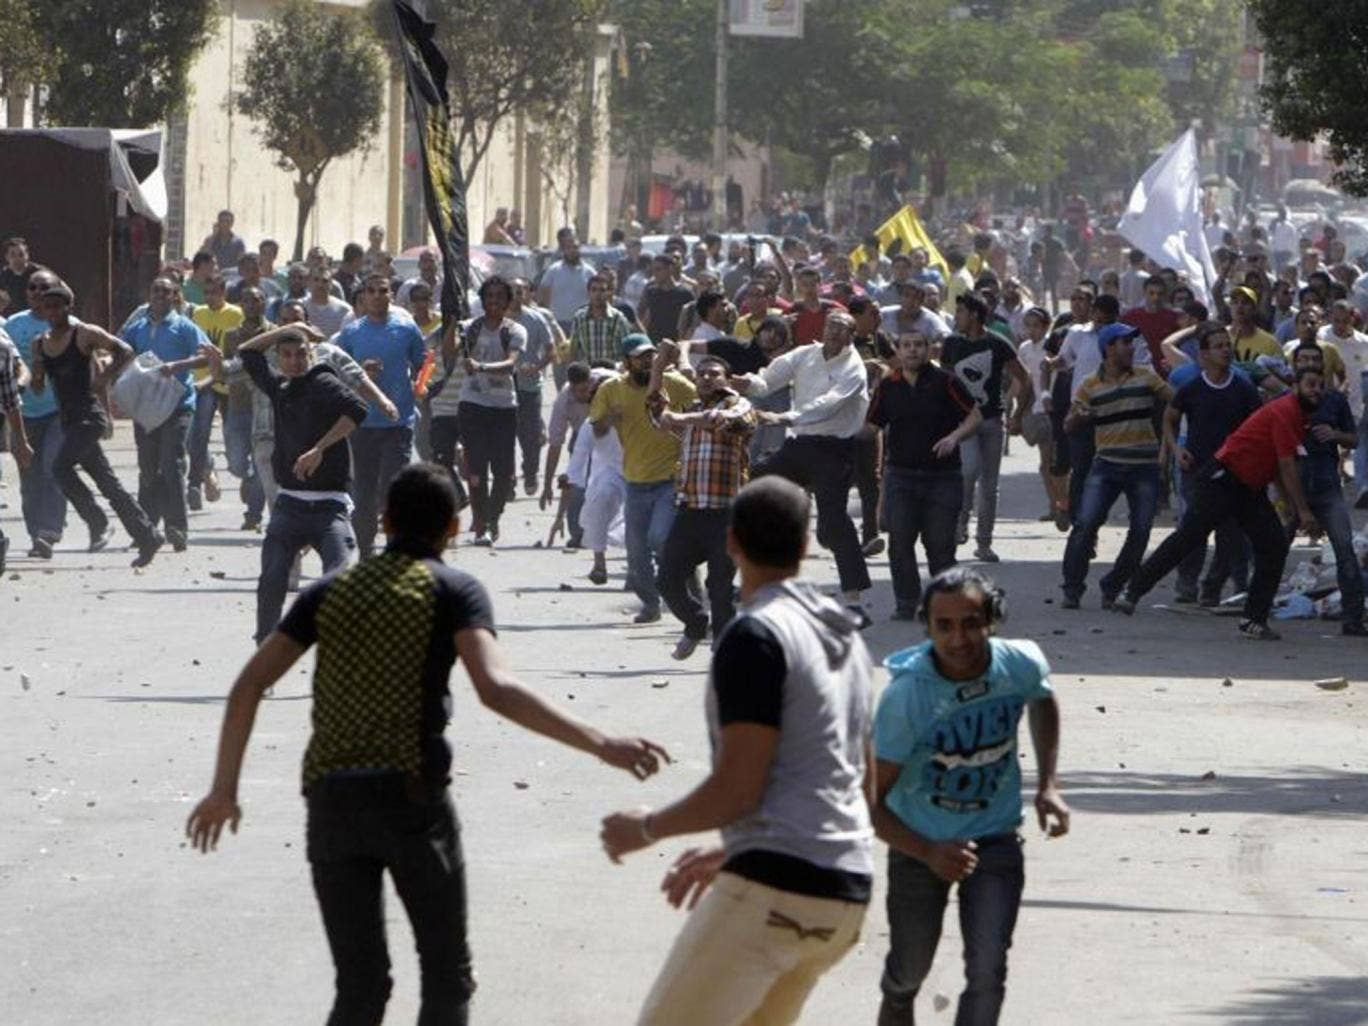 Supporters of deposed President Mohamed Morsi and the Muslim Brotherhood clash with anti-Morsi protesters during a march in Shubra street in Cairo